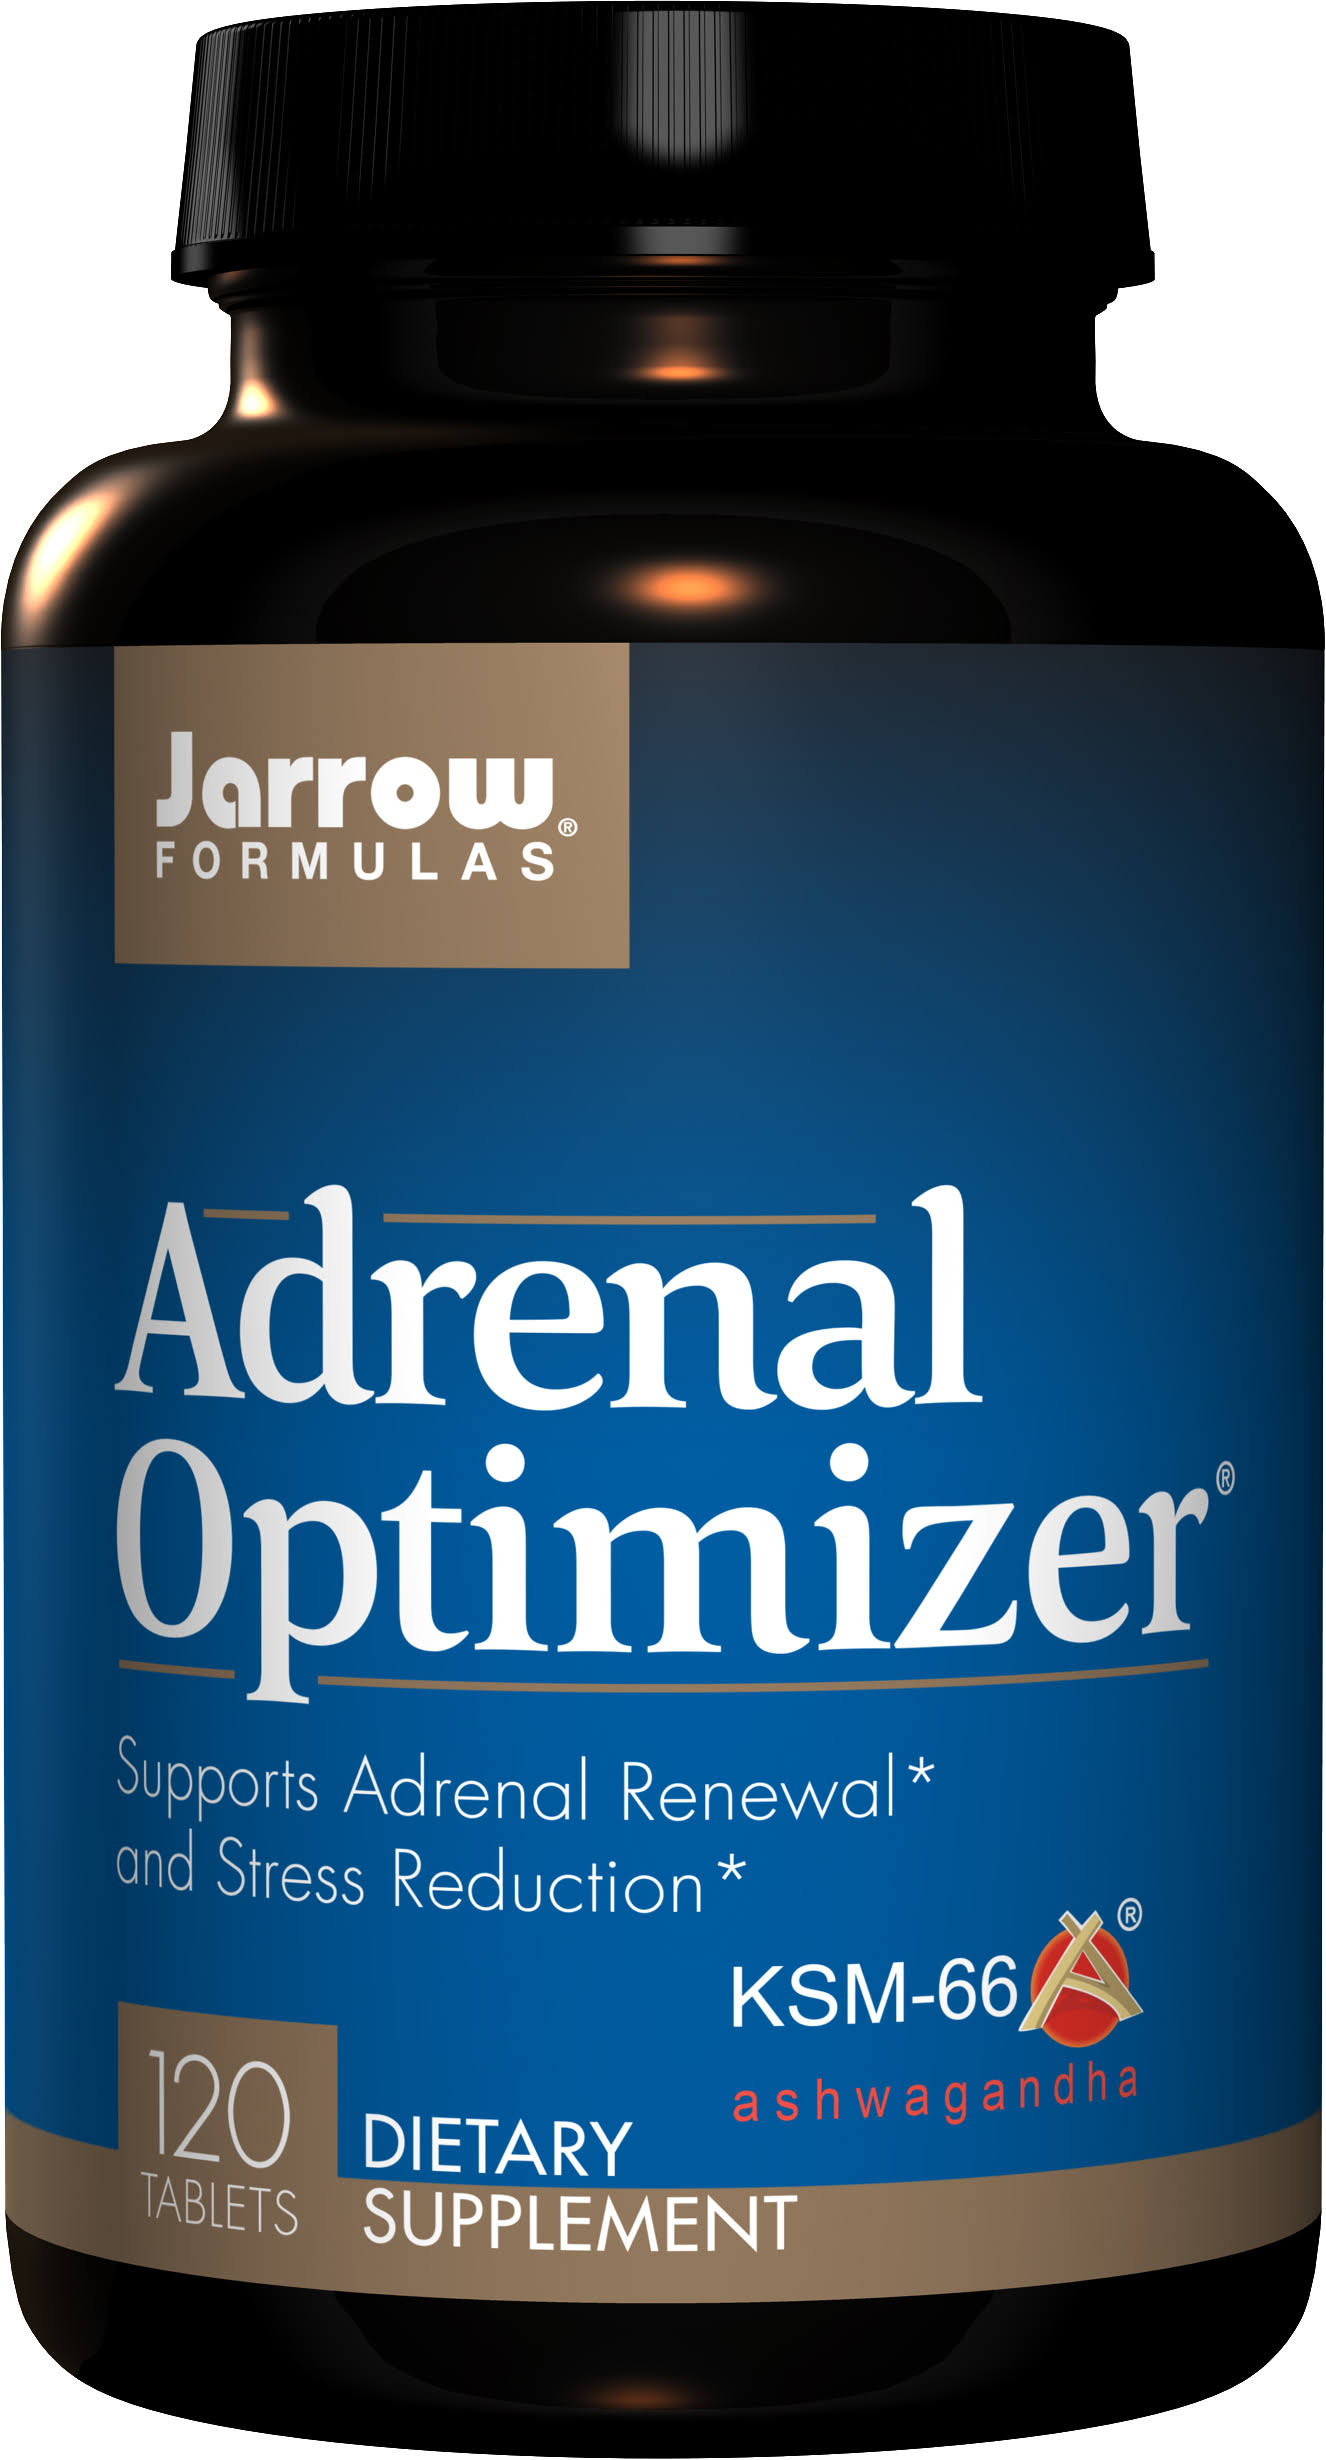 Jarrow Formulas Adrenal Optimizer Dietary Supplement - 120 Tablets